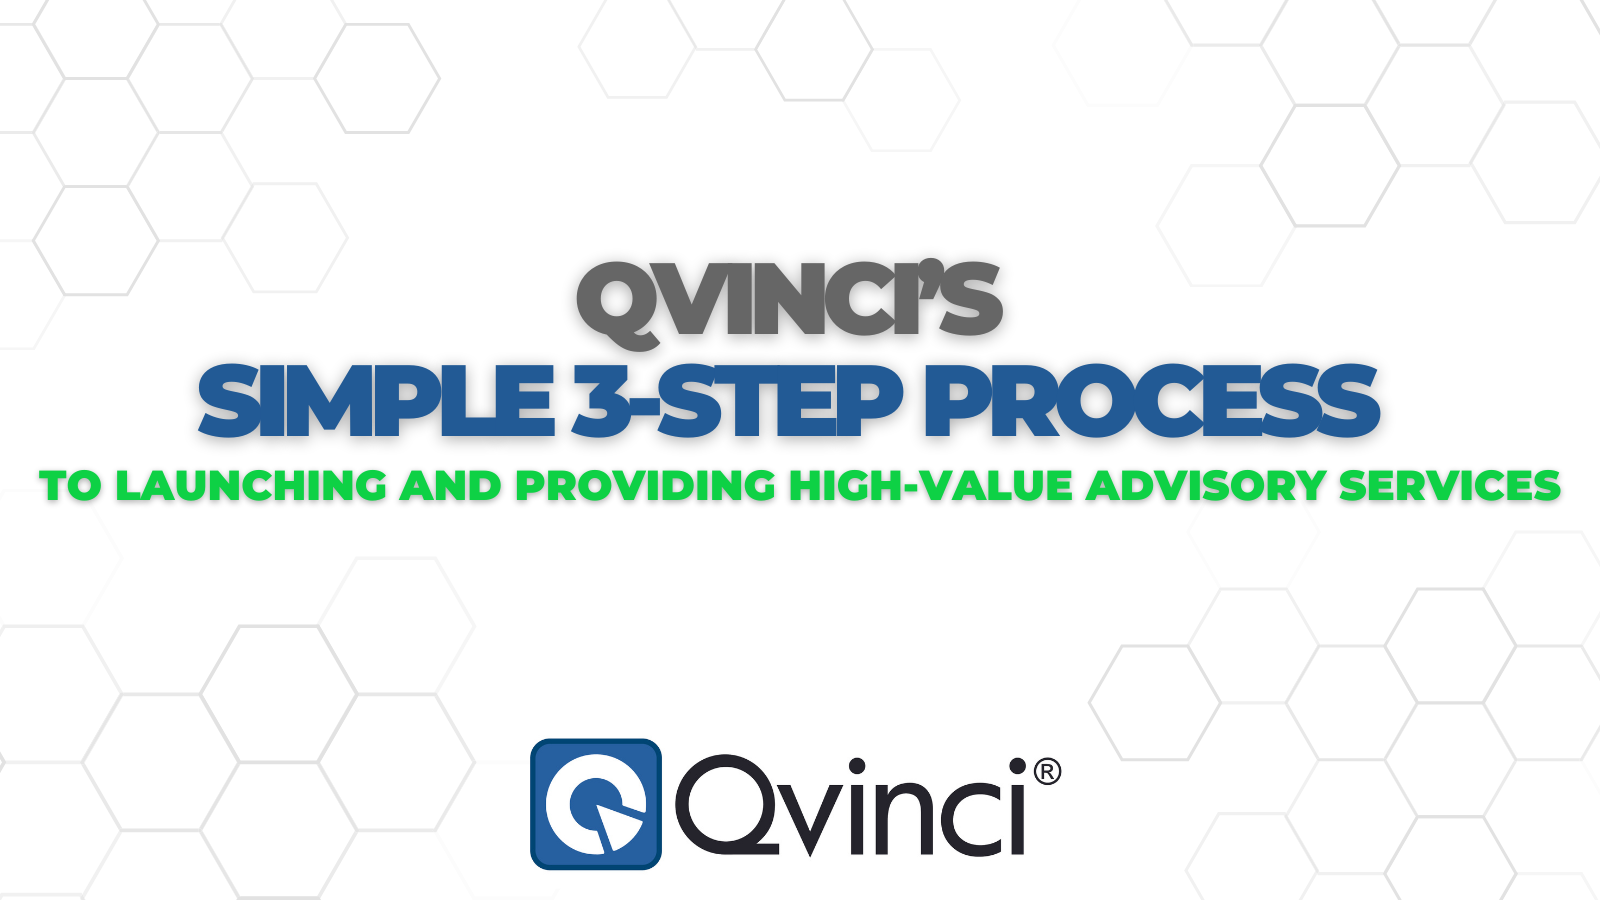 Qvinci's Simple 3-Step Process to Launching and Providing High-Value Advisory Services